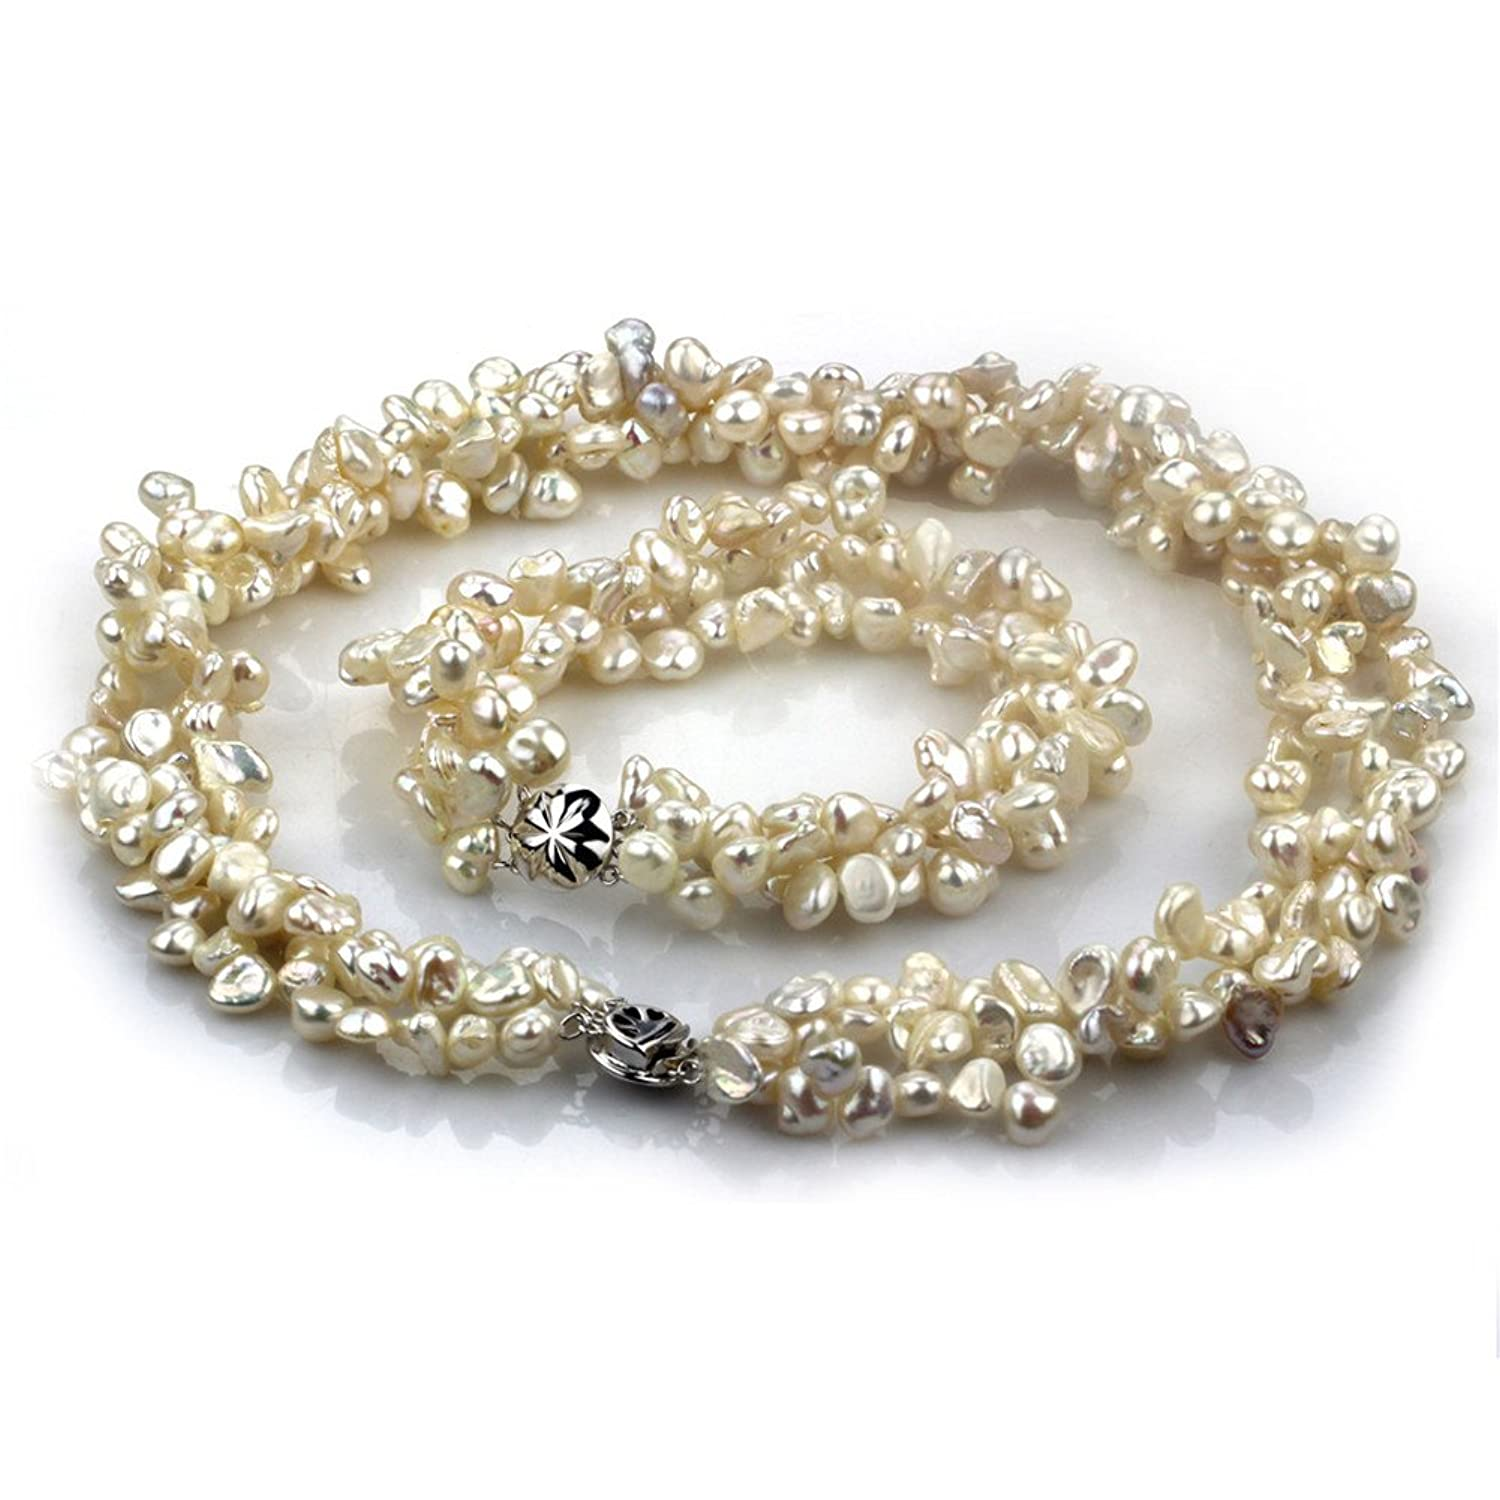 Chpel 5-7mm keshi freshwater cultured pearl necklace 18'' bra 8'' AA quality